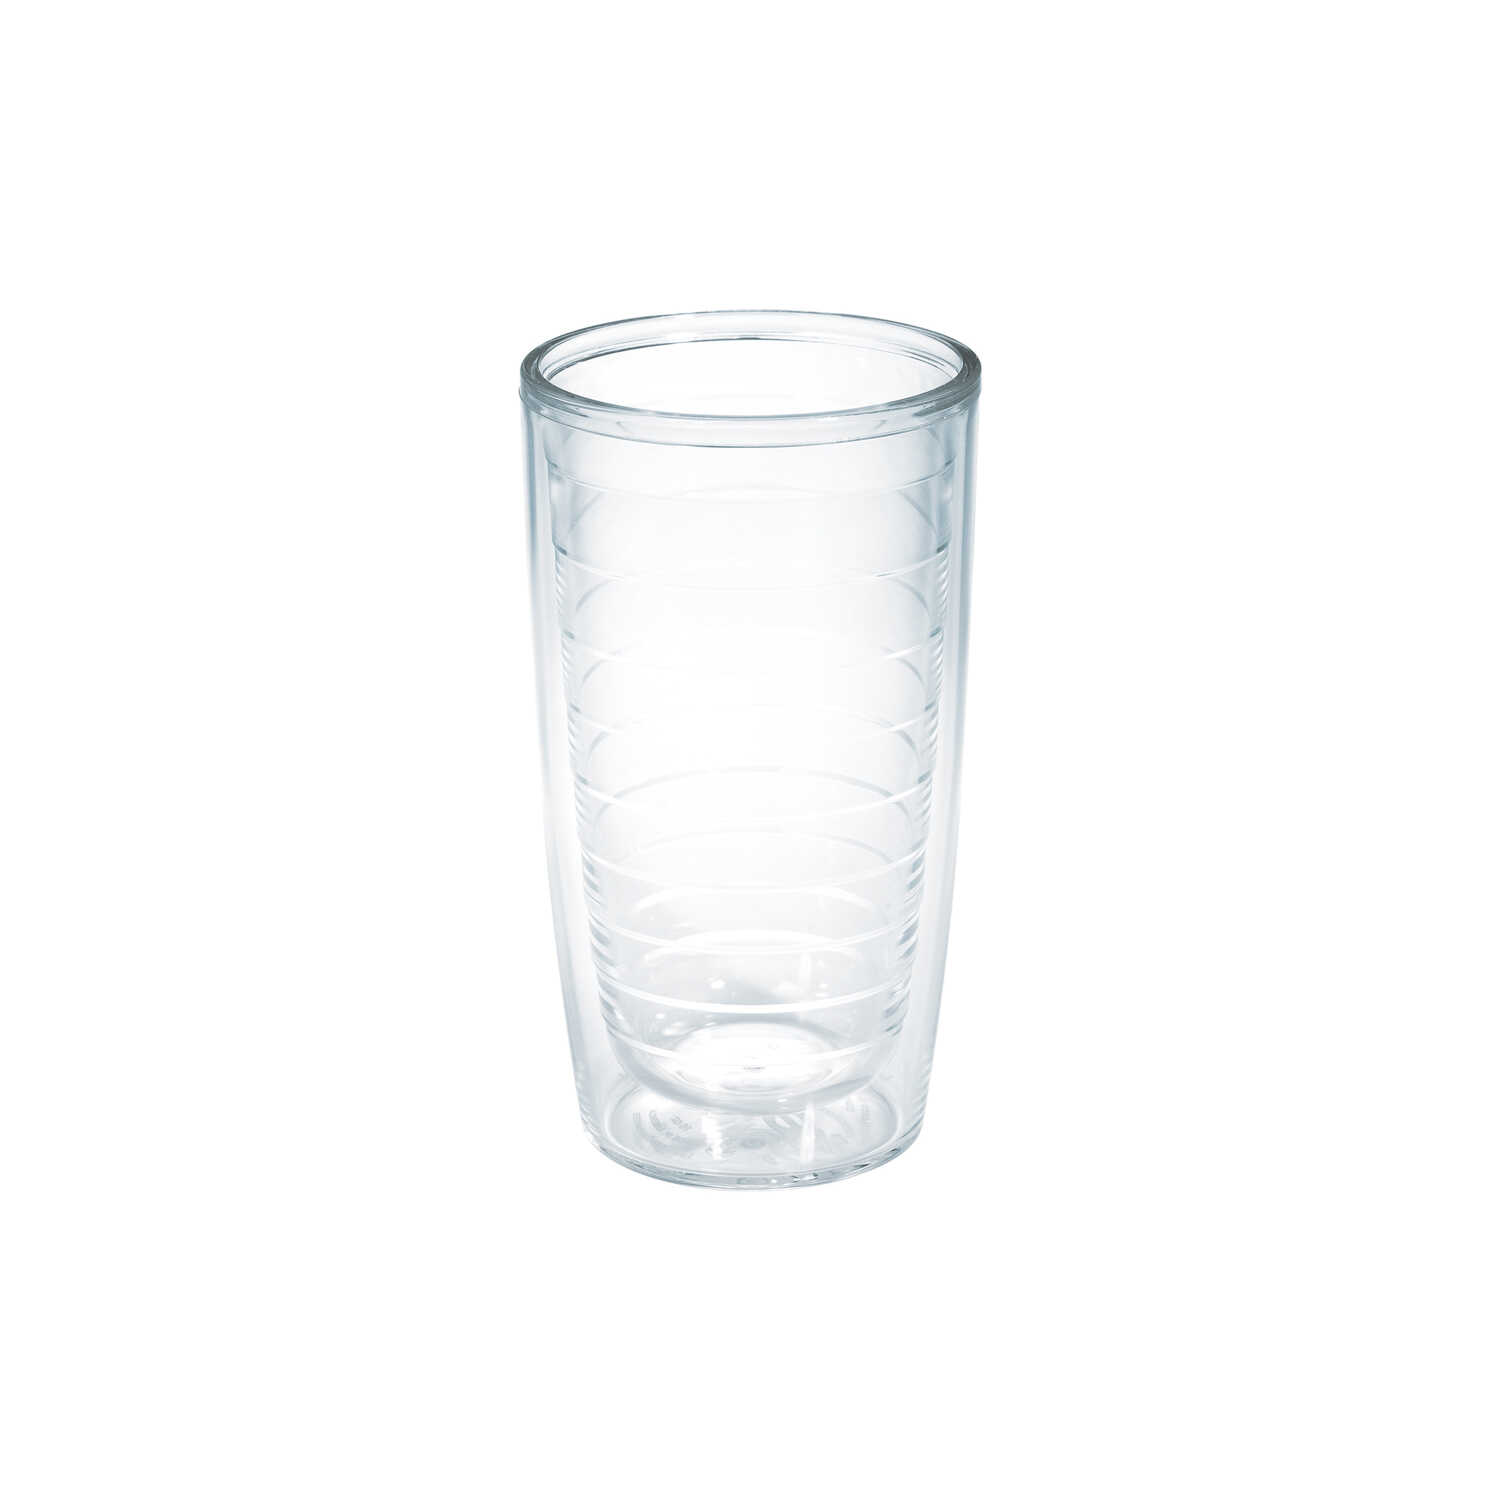 Tervis  16 oz. Tumbler  Clear